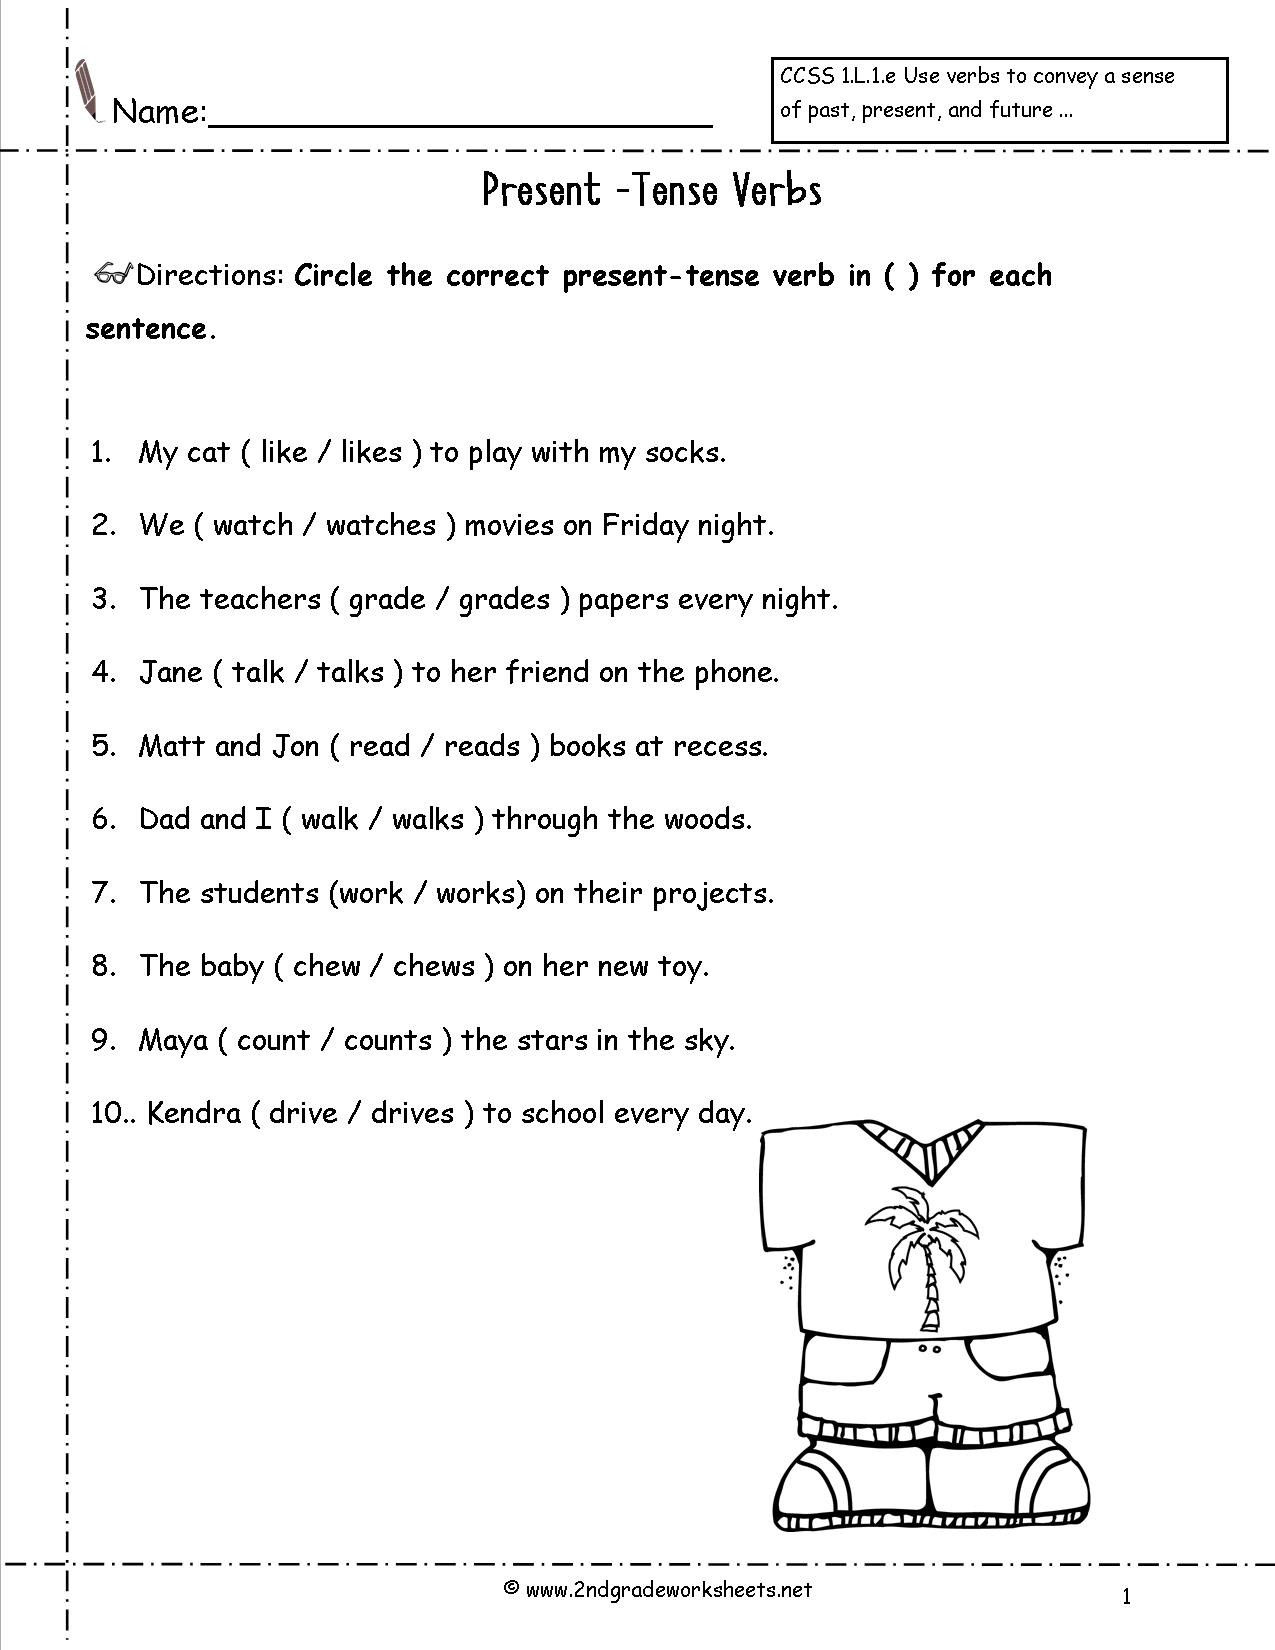 Verbs Worksheets for 1st Grade Verb Tenses Cut and Paste Worksheet